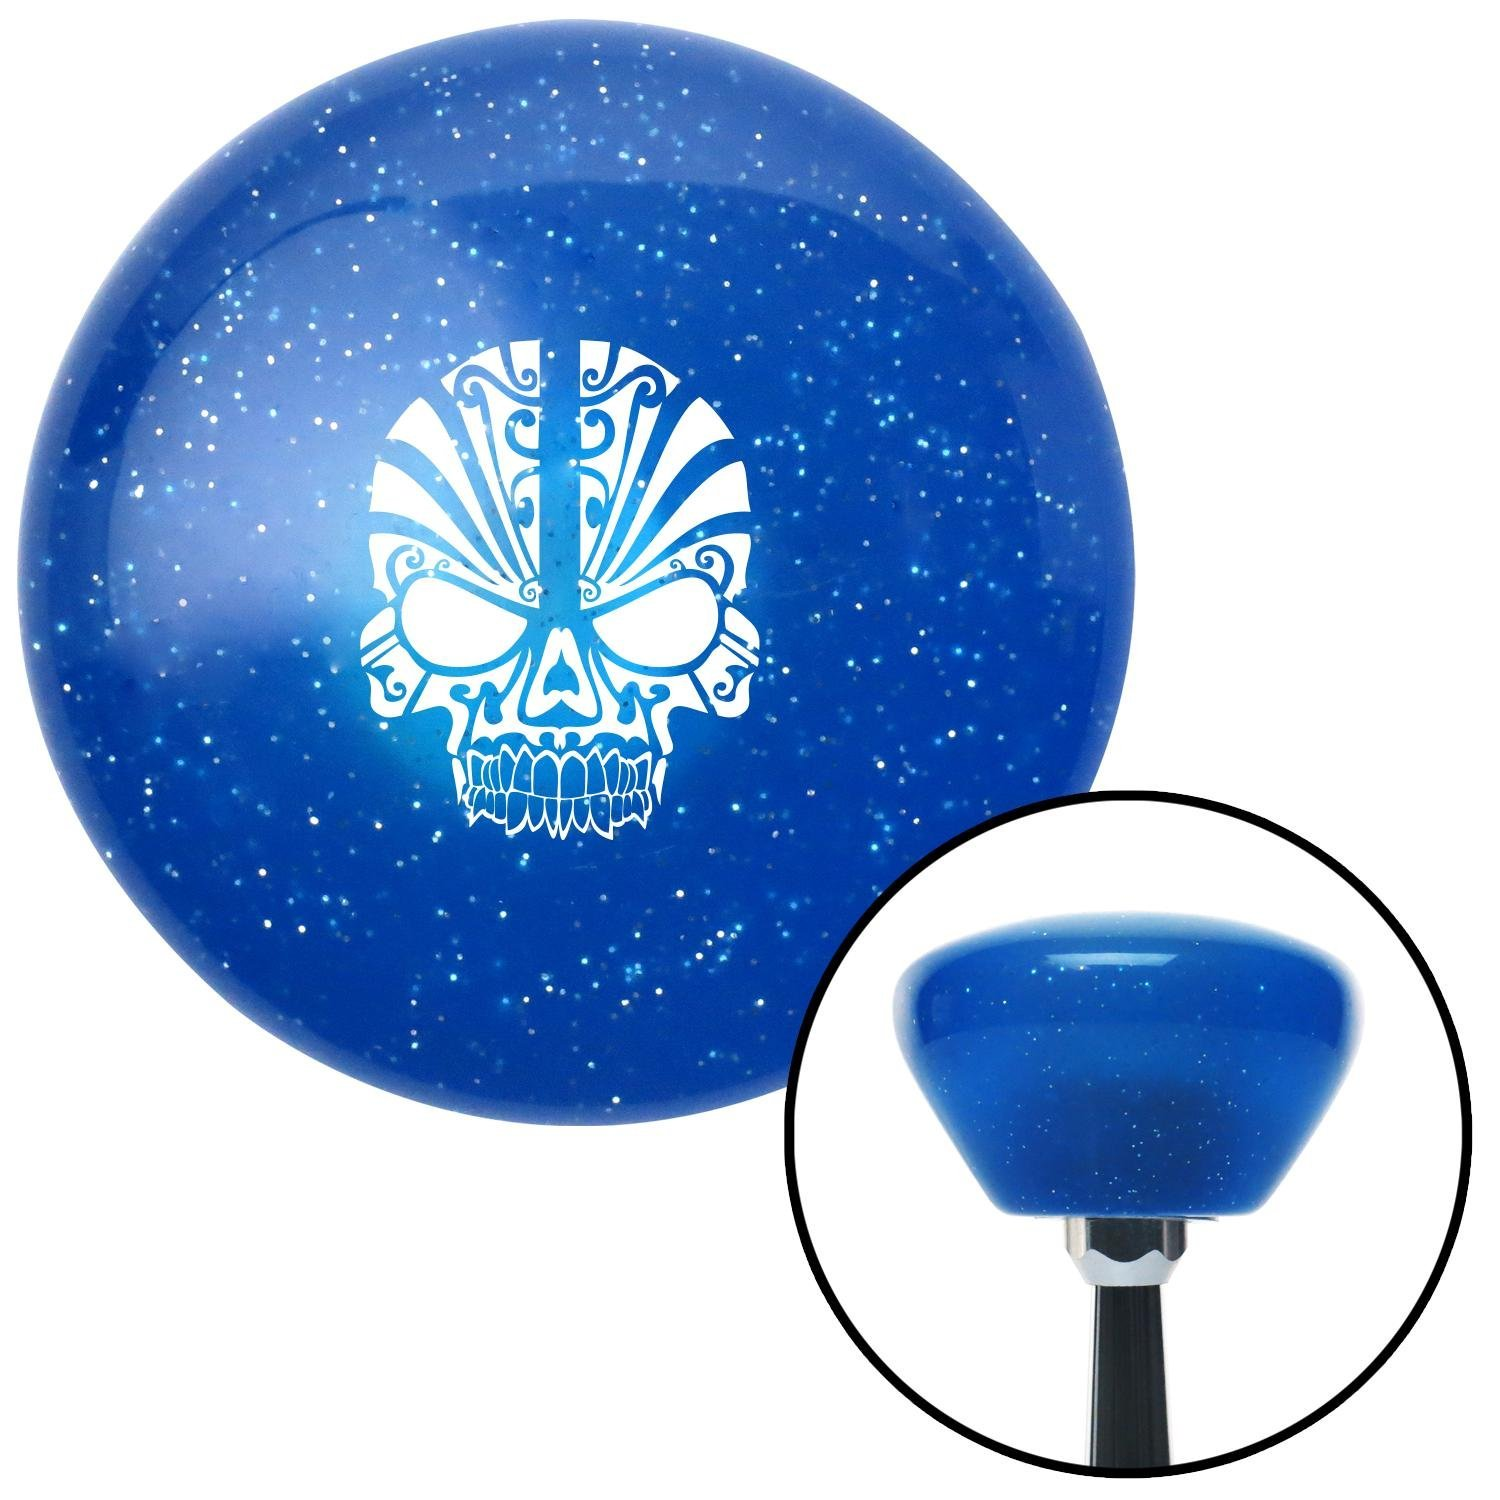 White Skull 5 American Shifter 192388 Blue Retro Metal Flake Shift Knob with M16 x 1.5 Insert